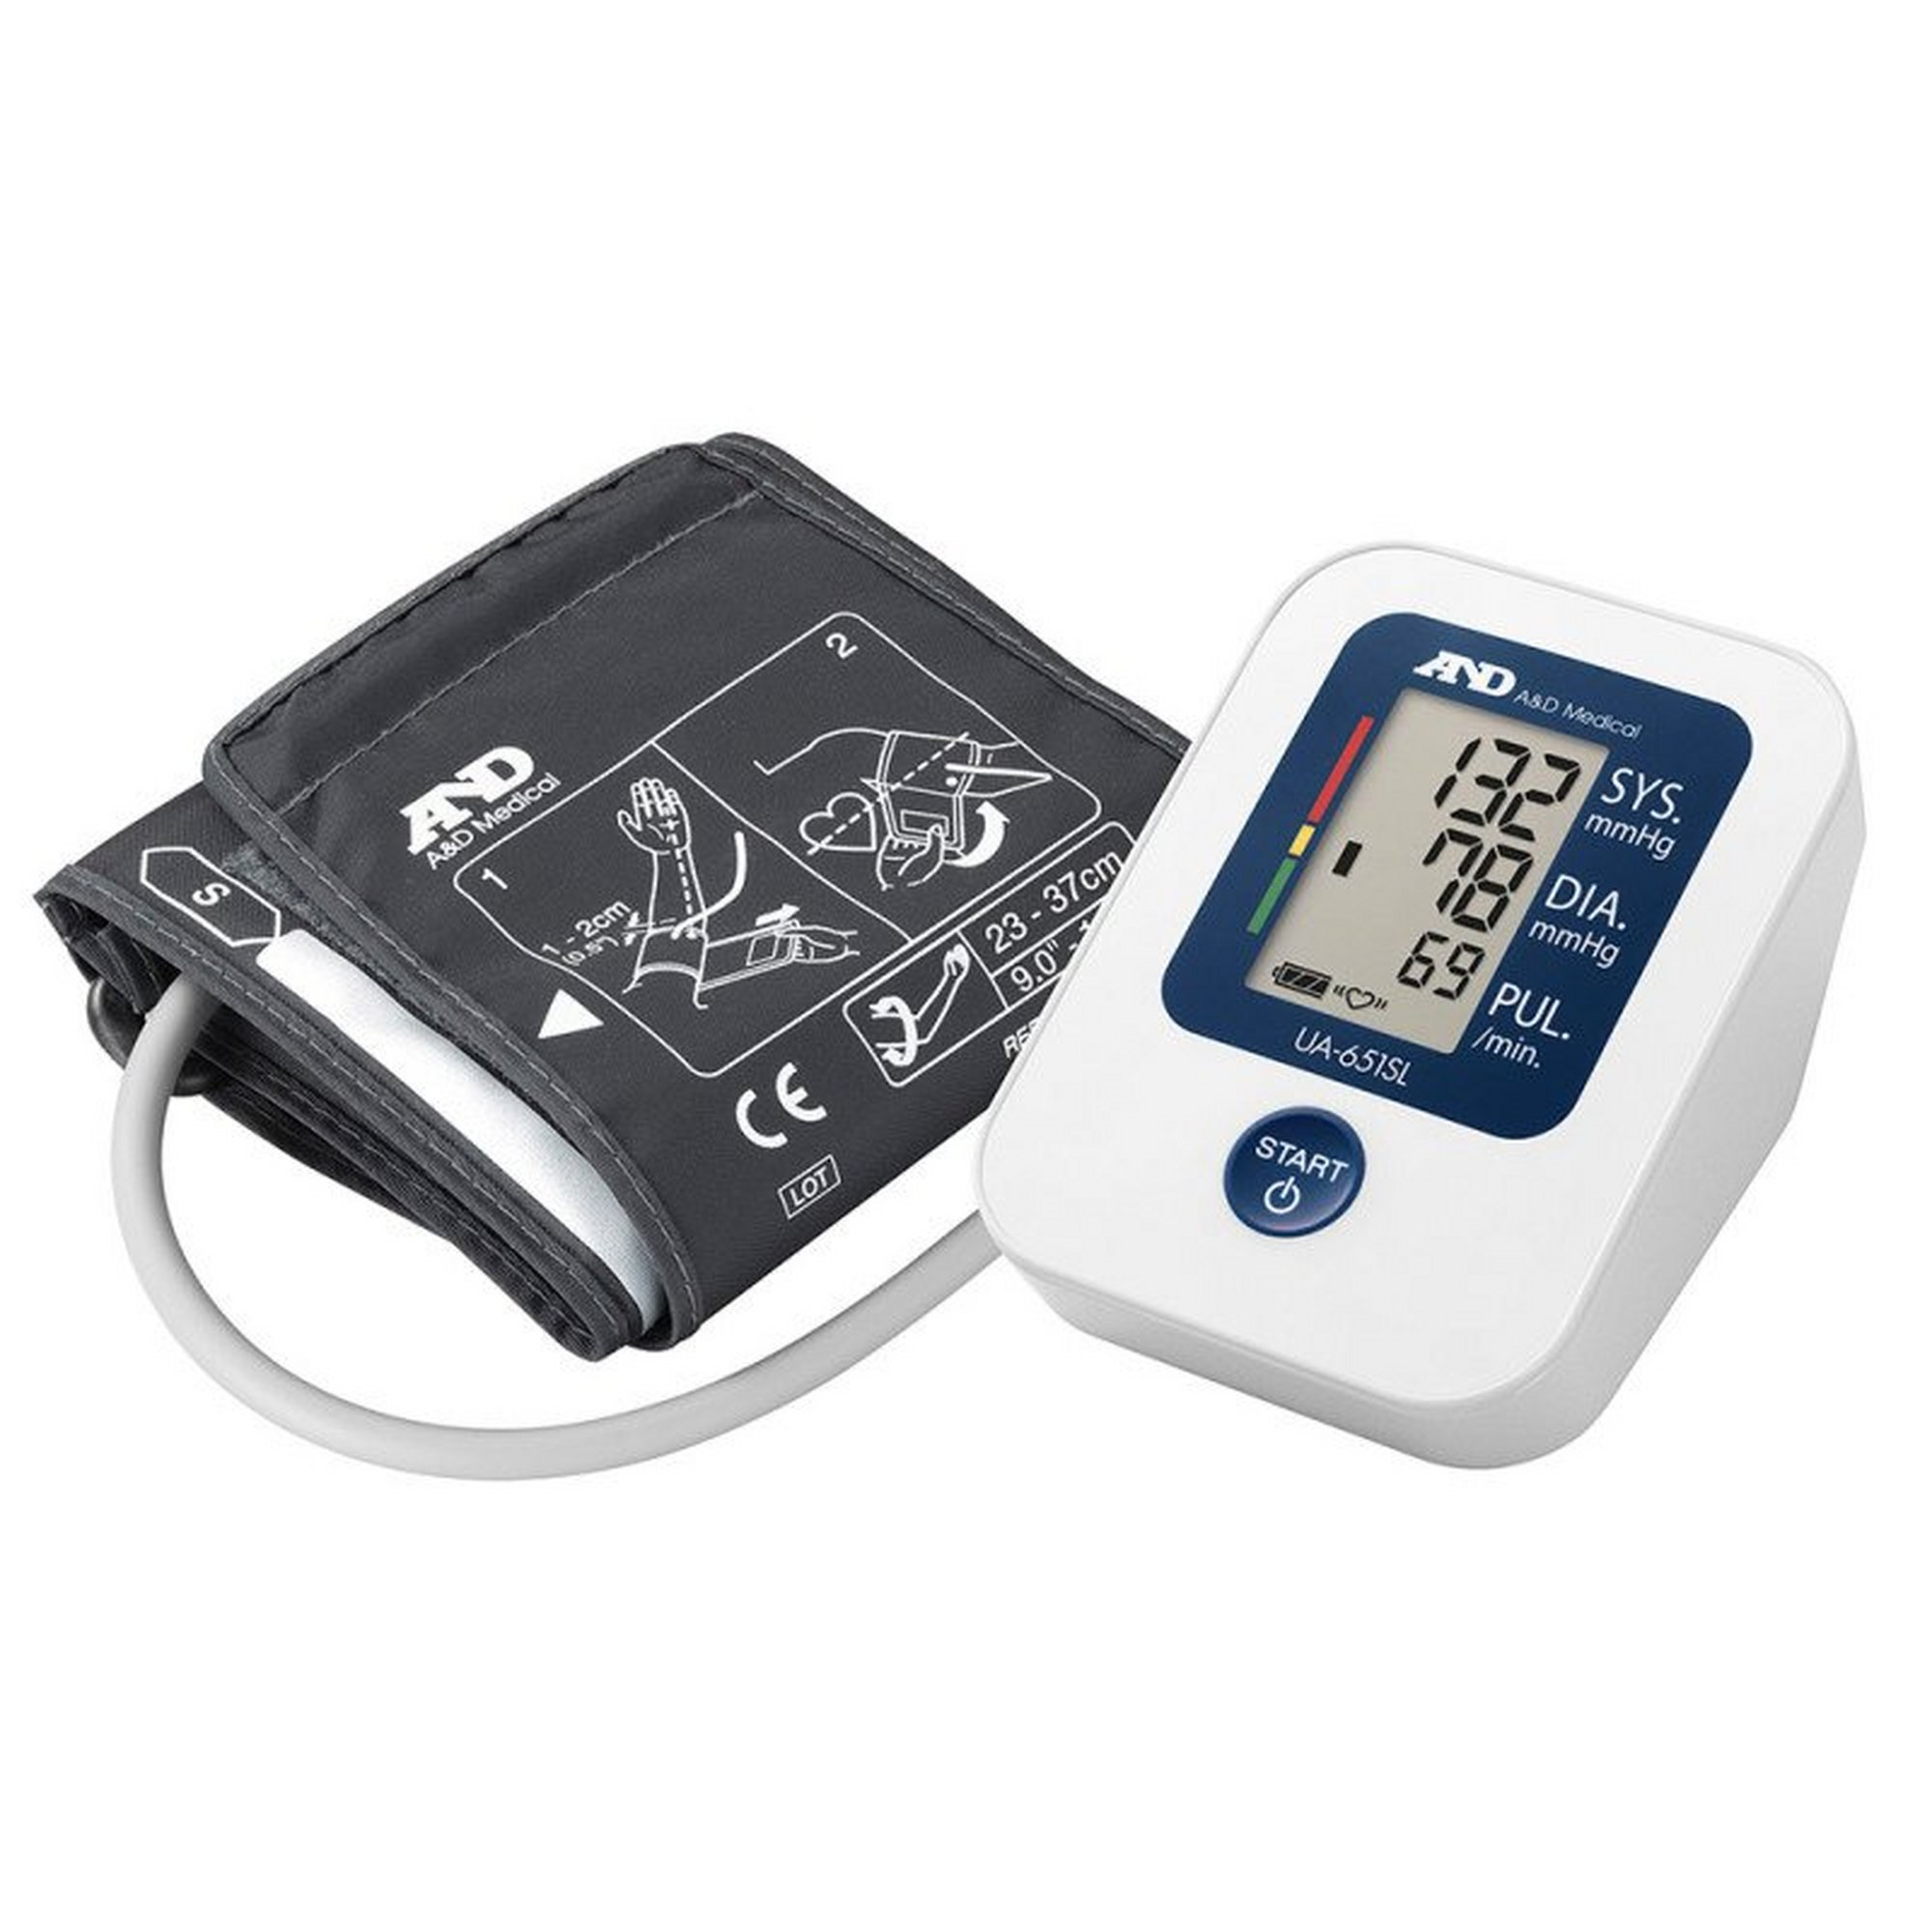 Image of A and D Semi Large Cuff Blood Pressure Monitor